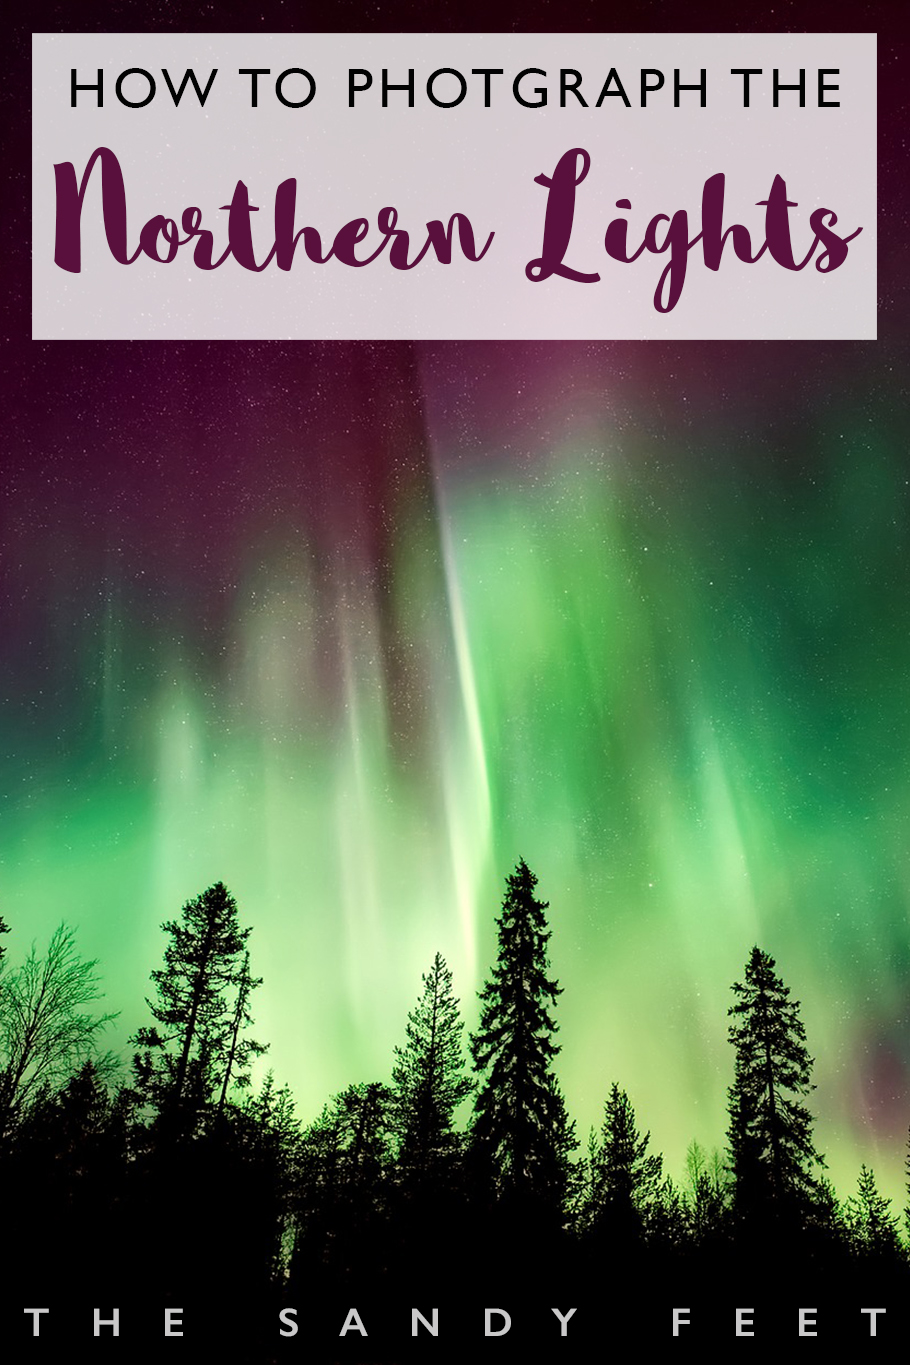 Photographing The Northern Lights | Tips For How To Capture The Aurora Borealis